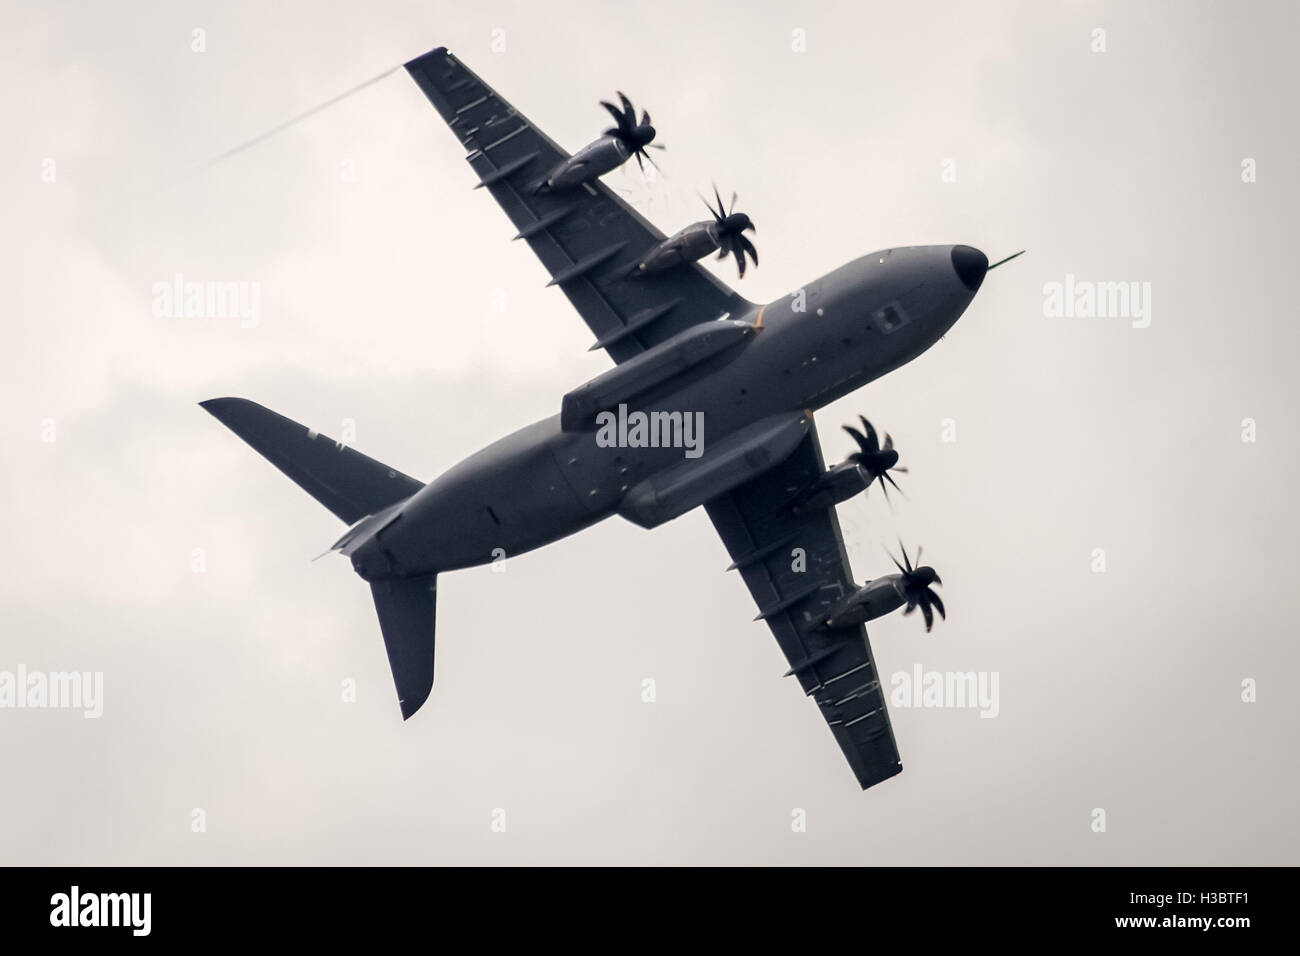 An Airbus A400M Atlas military transport aircraft performs at the Farnborough Air Show 2014. - Stock Image